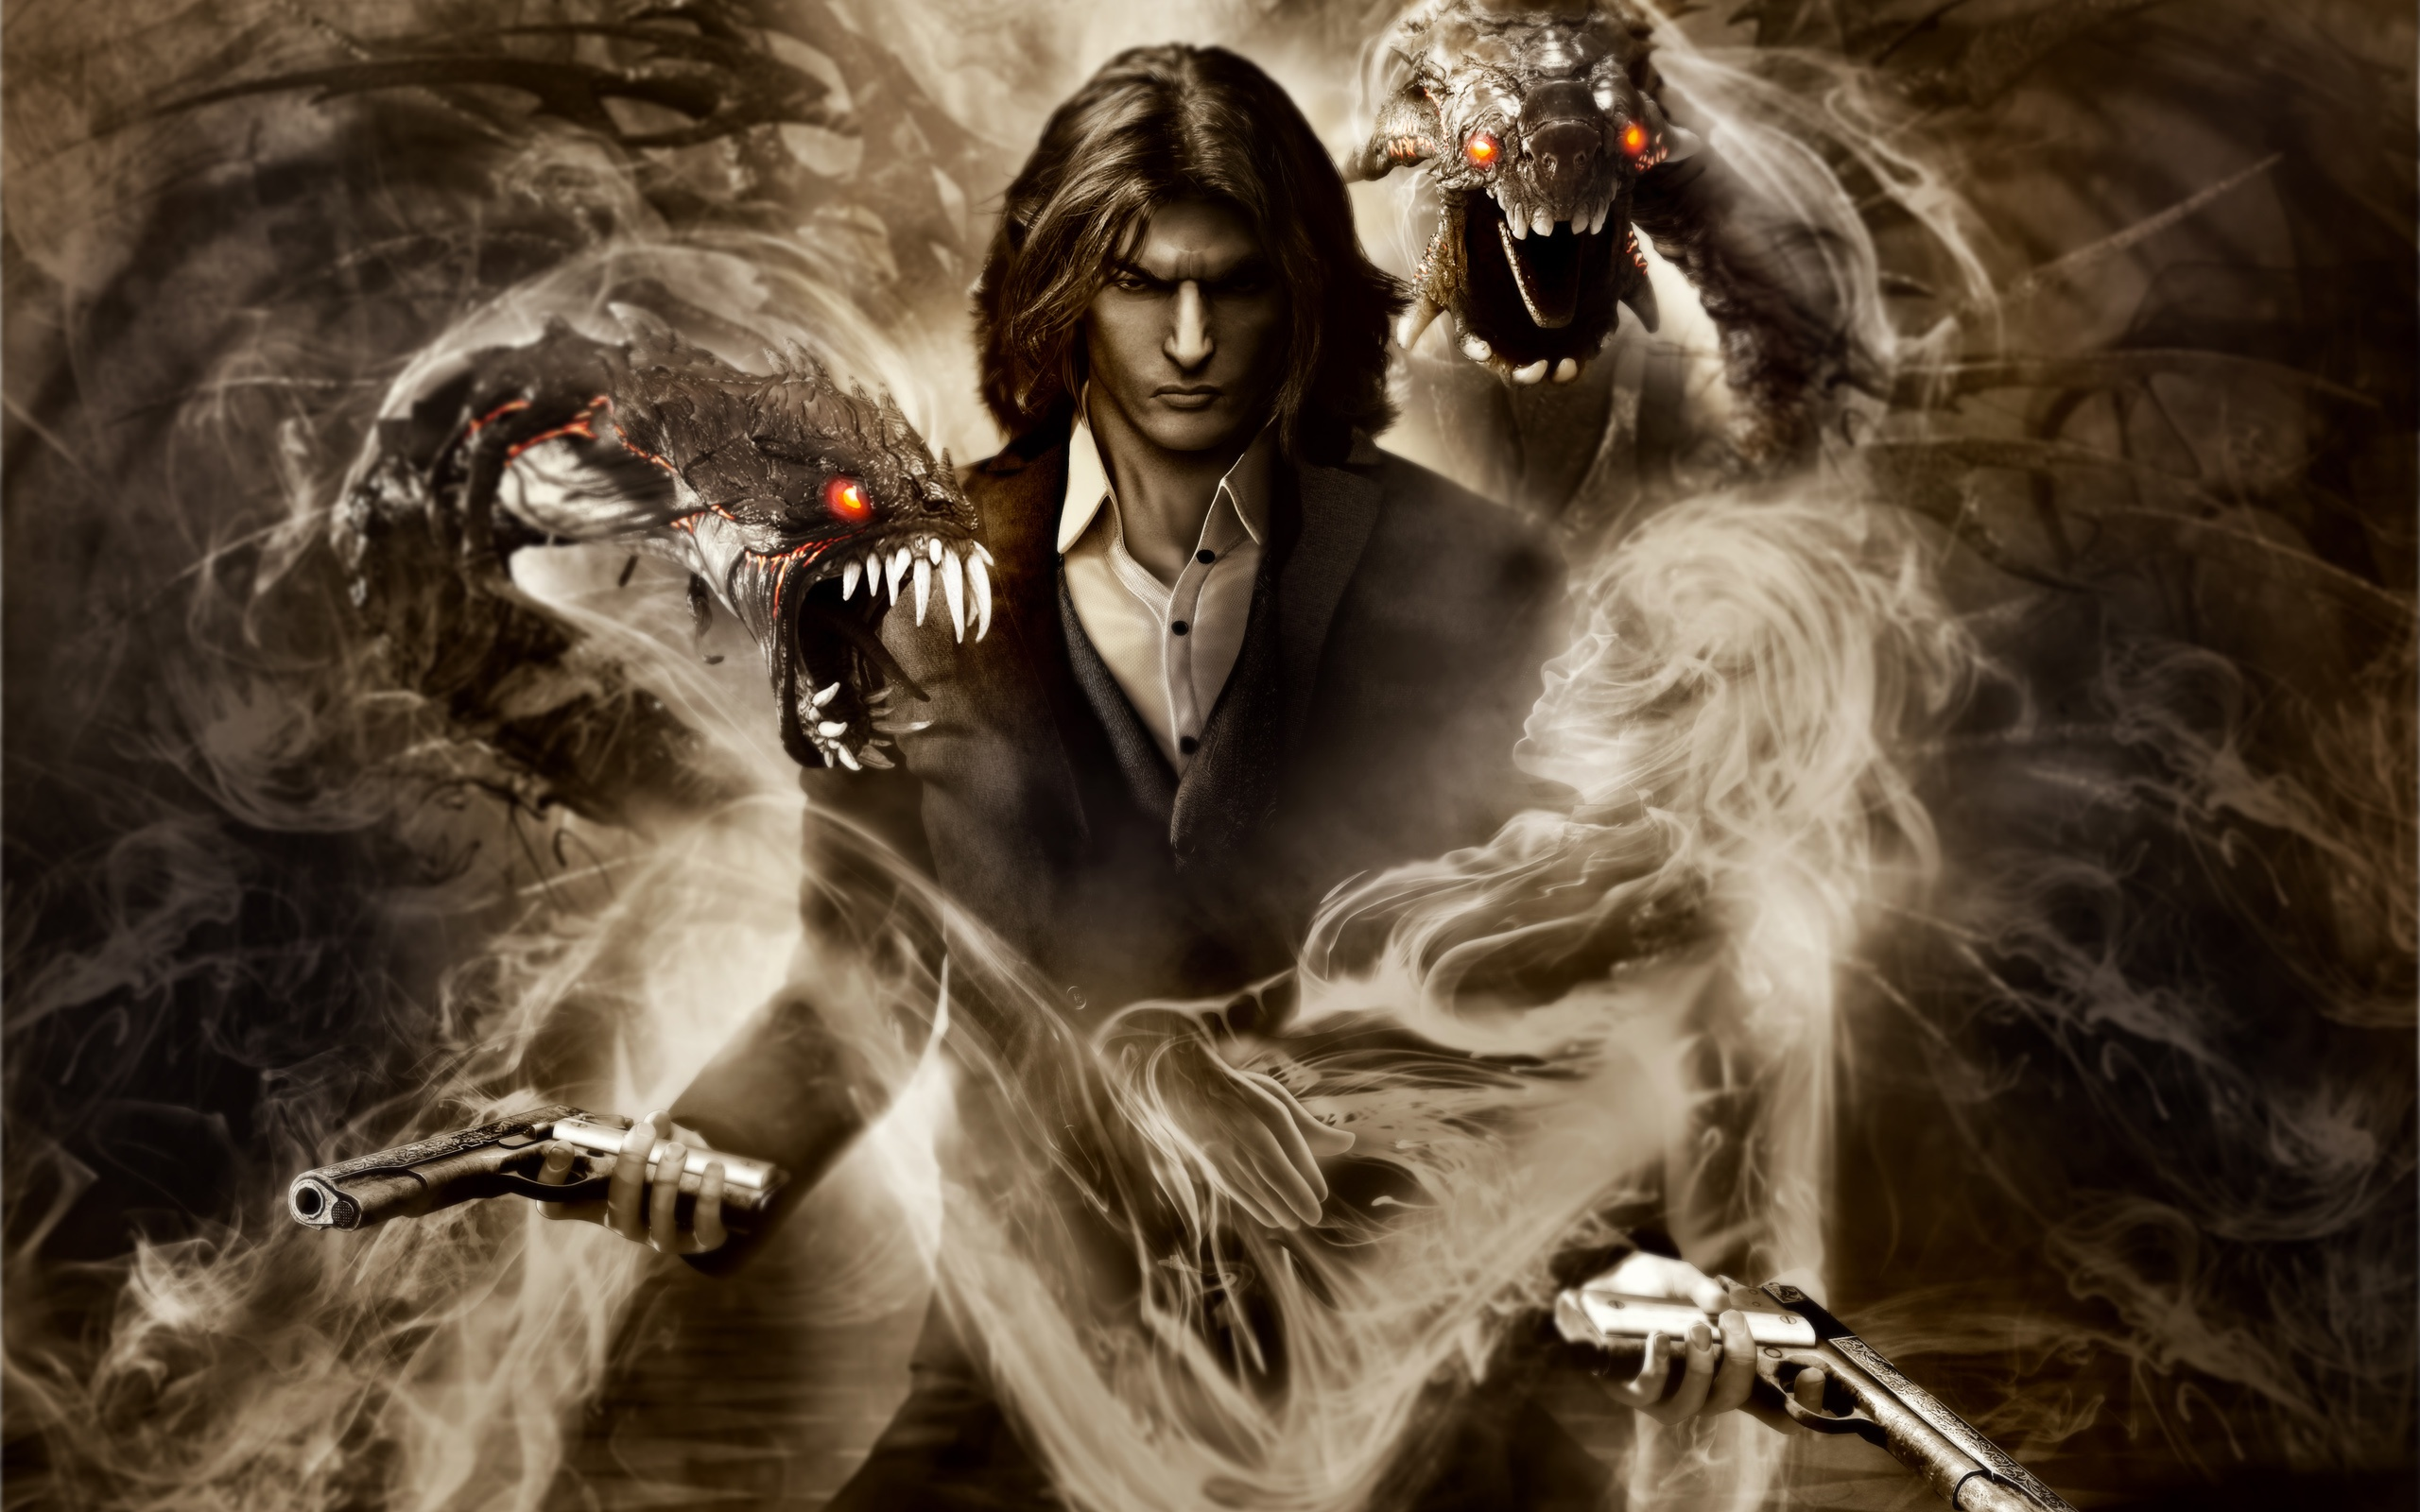 The Darkness II Game Wallpapers   2560x1600   838949 2560x1600